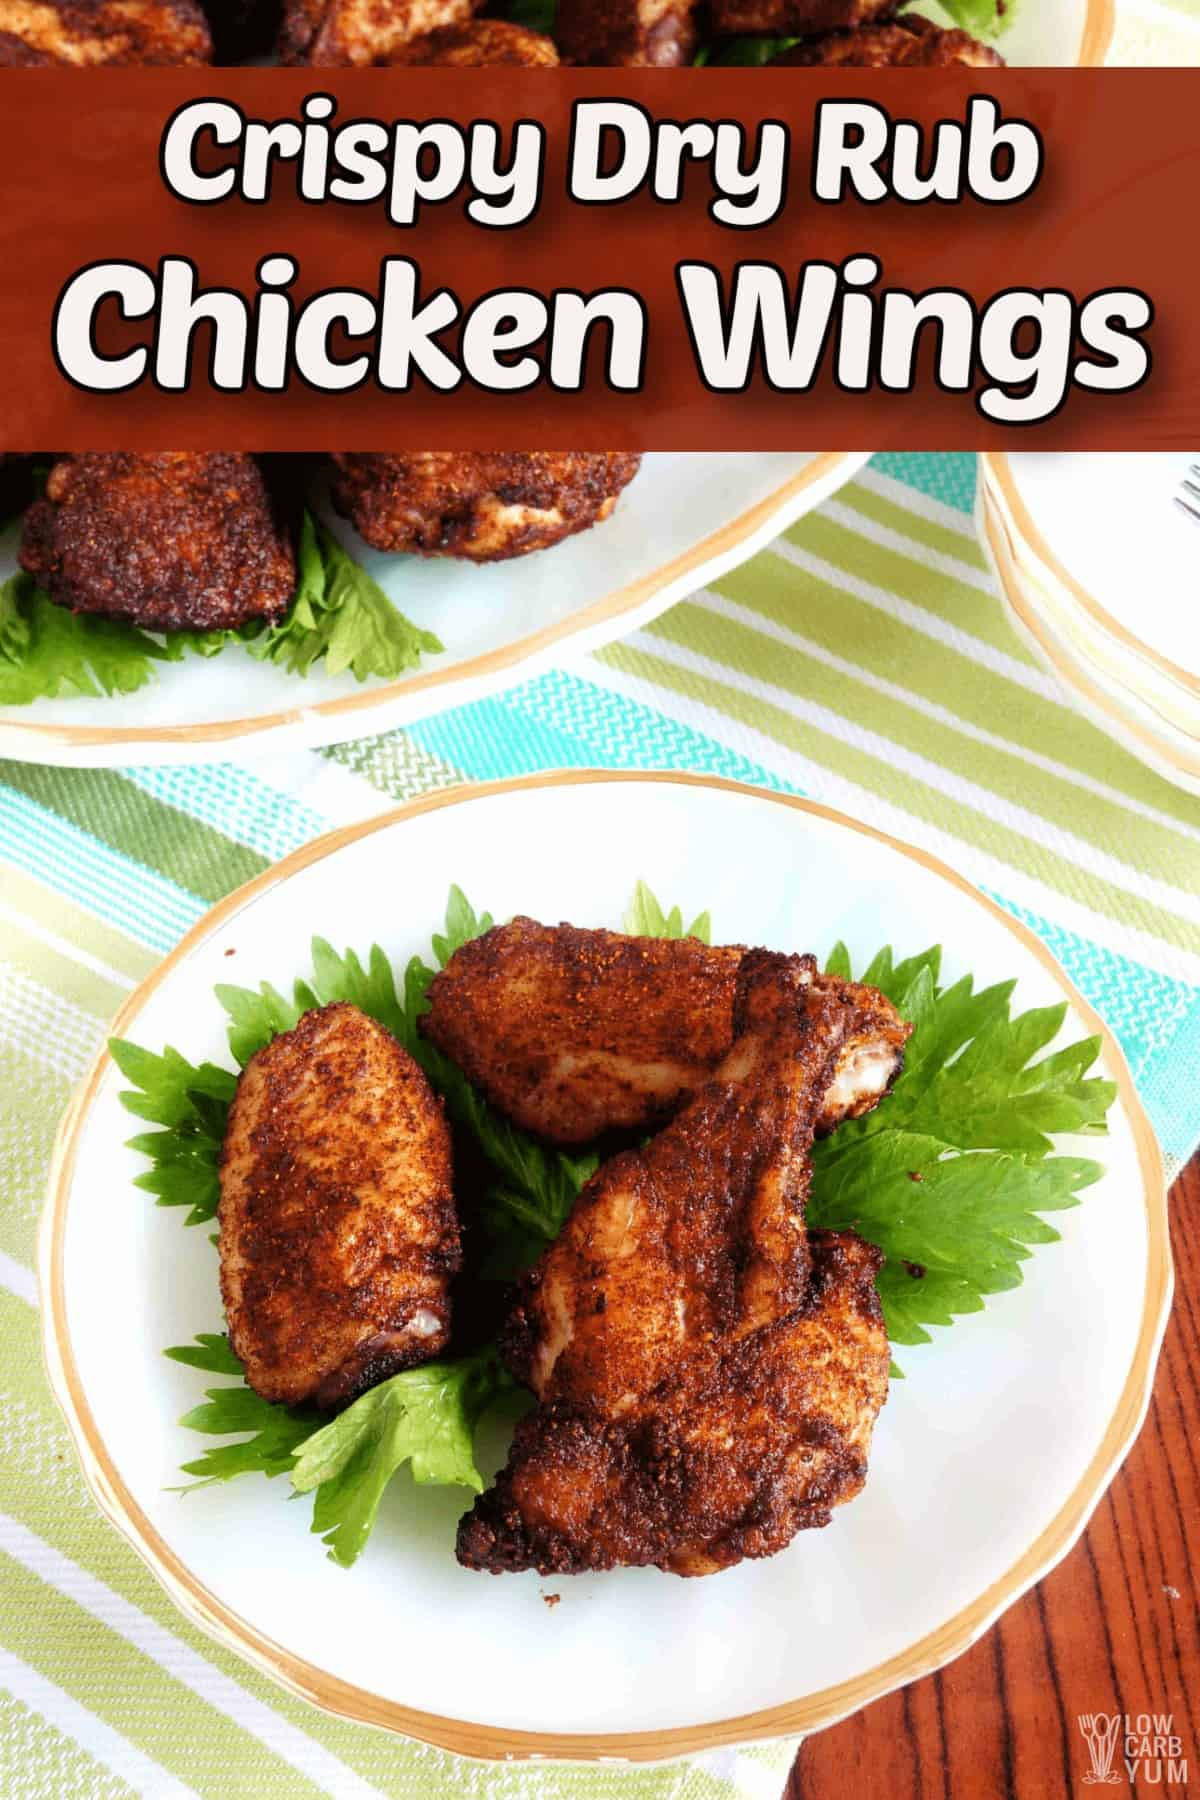 crispy dry rub chicken wings recipe pintrest image